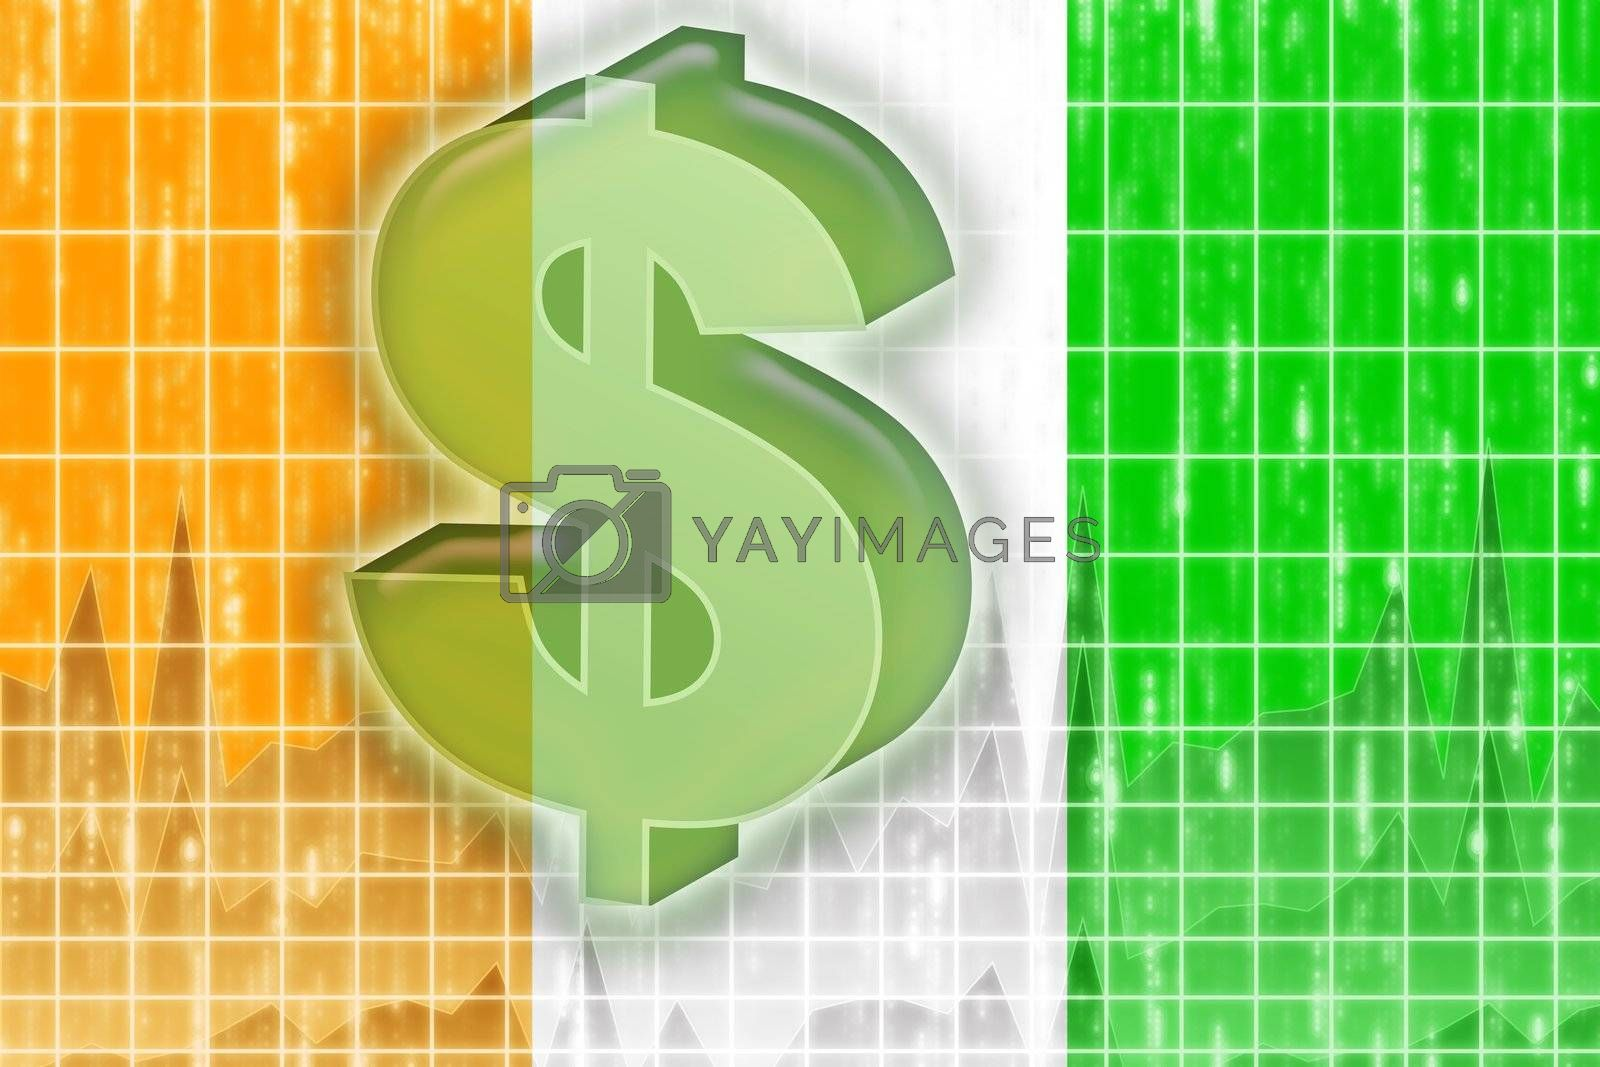 Flag of Ivory Coast finance economy by kgtoh